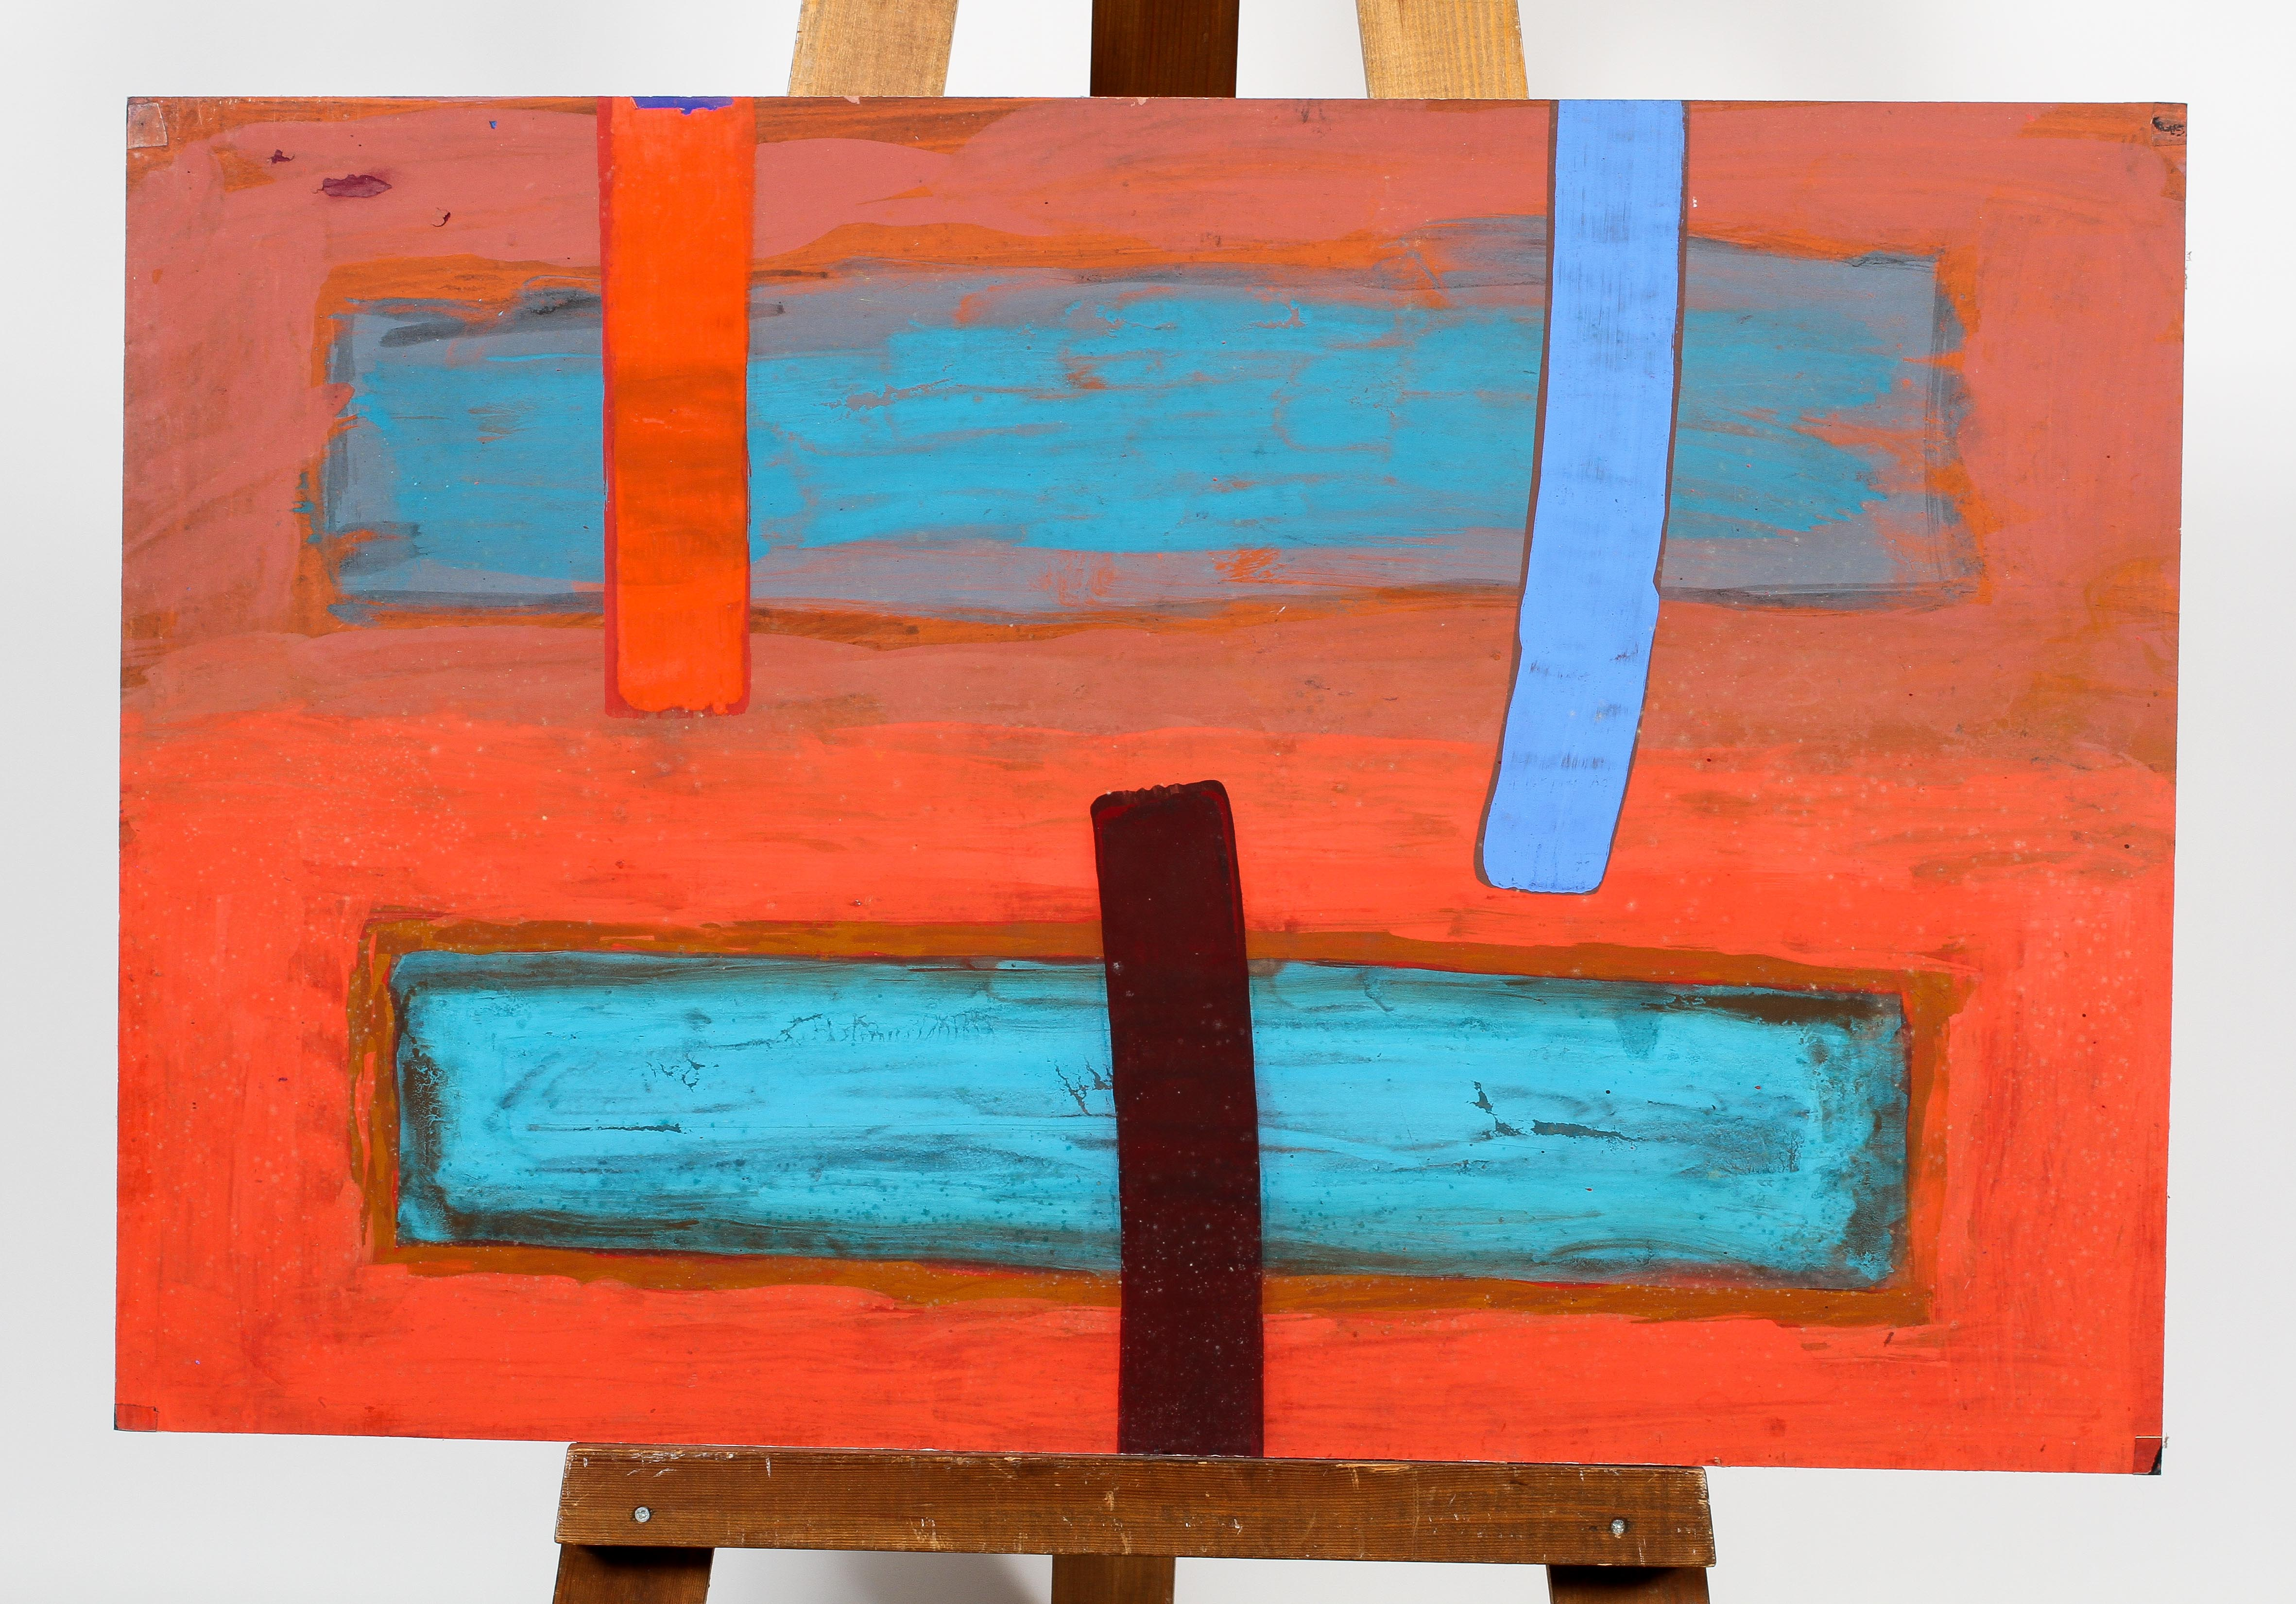 Peter Baxter Mill, Abstract in Red and Blue, gouache on board, attributed and dated 1986 verso,